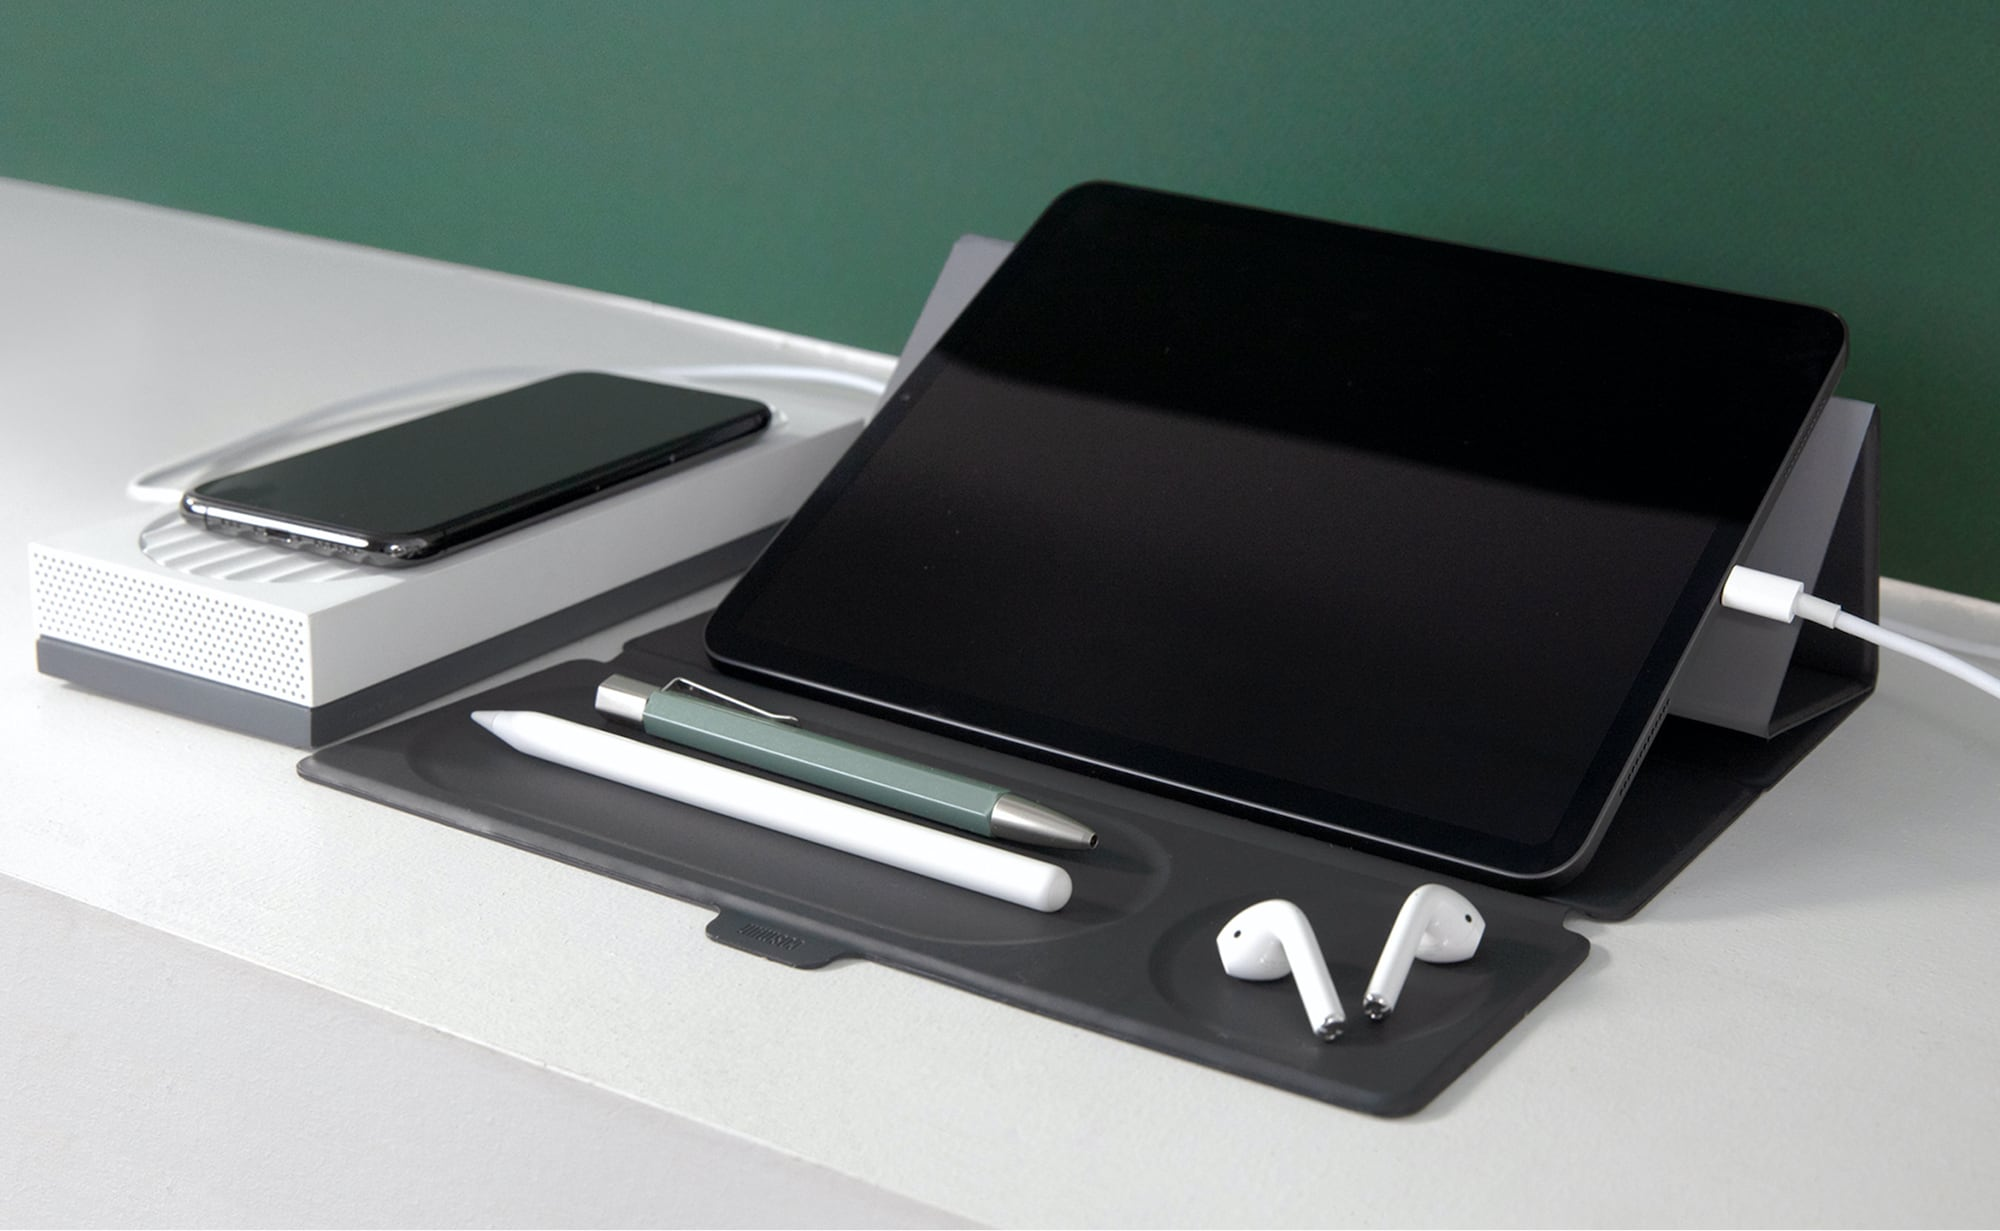 Co/Studio Portable Personal Workstation has everything you need to work on the go